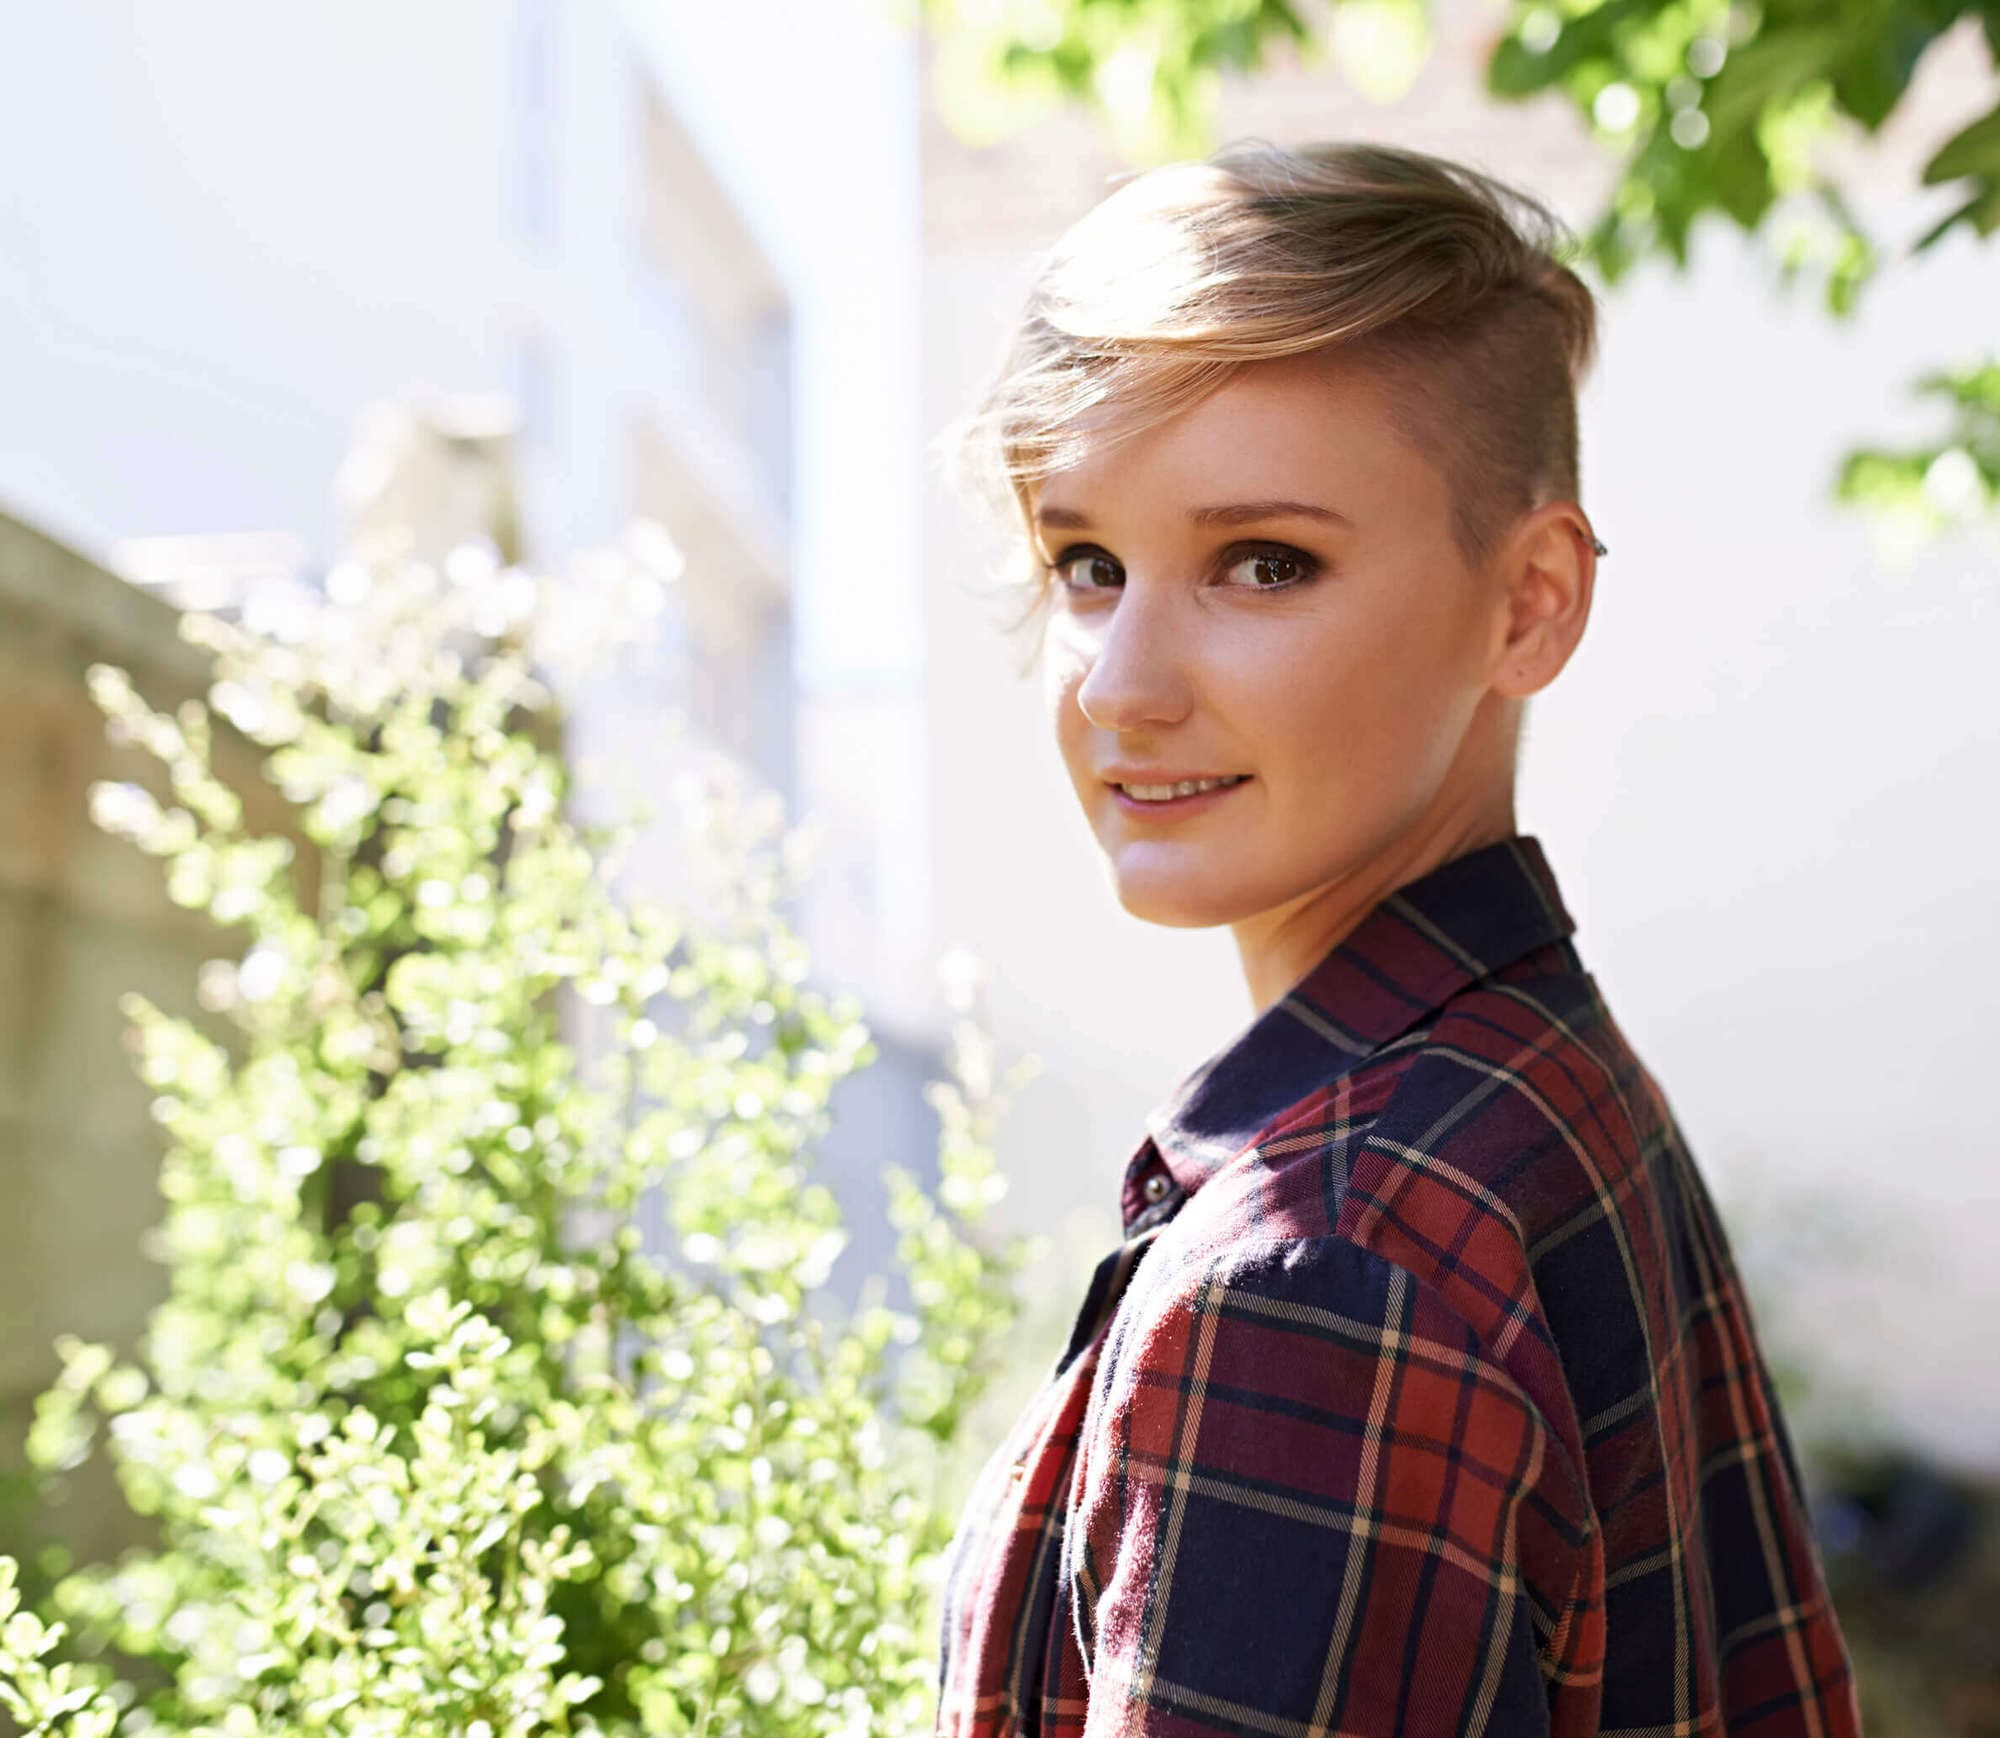 Asymmetrical haircut ideas how to wear this short haircut this season woman with asymmetrical pixie cut with undercut side shave solutioingenieria Images